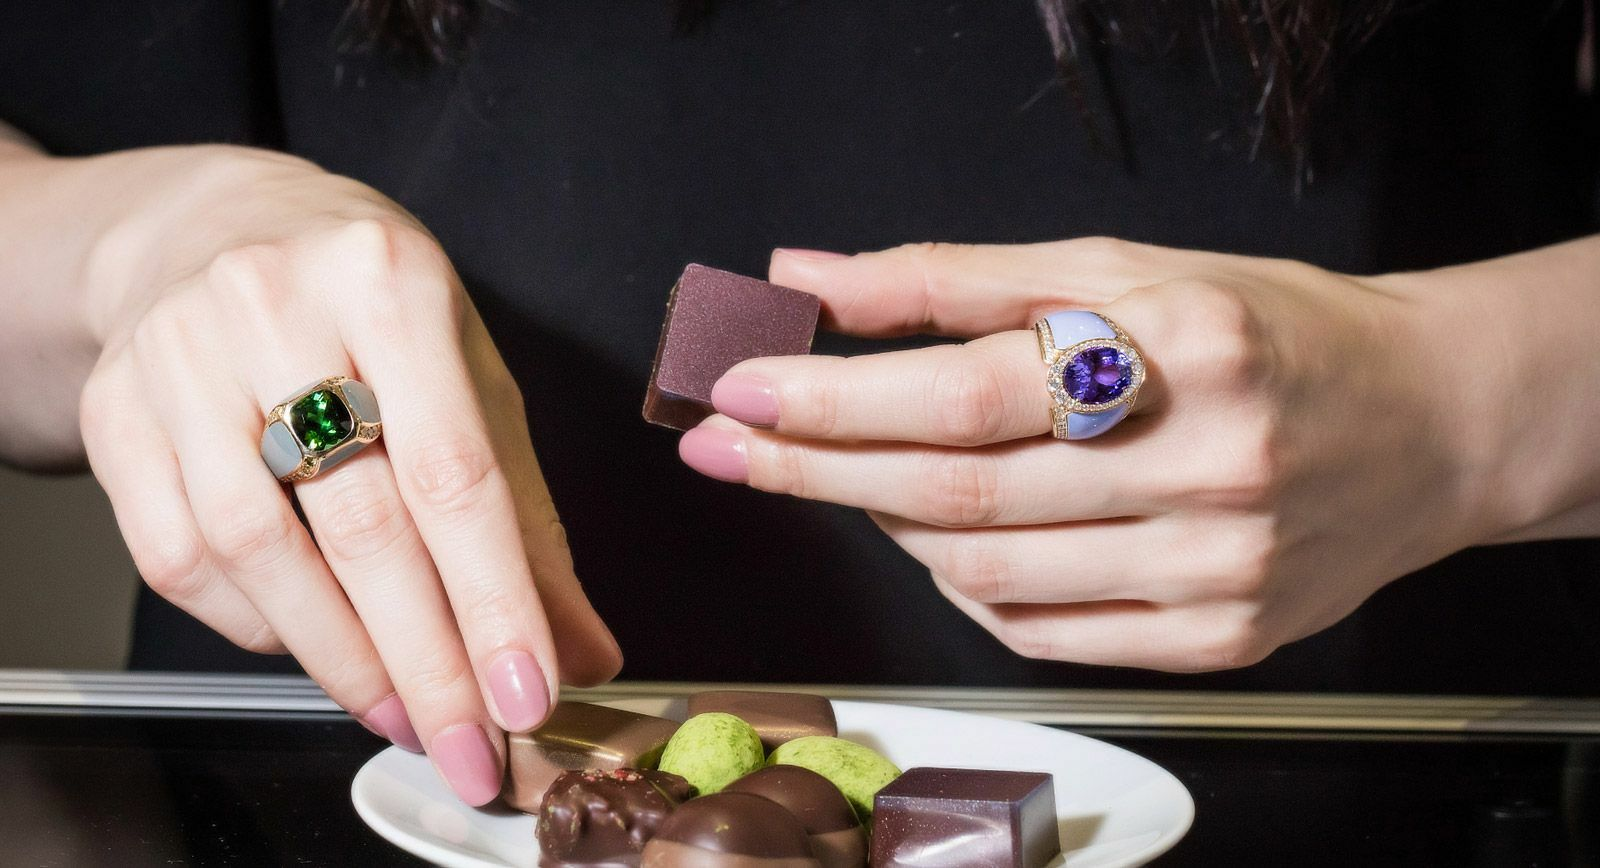 Doris Hangartner: Precious gemstones appealing to the five senses